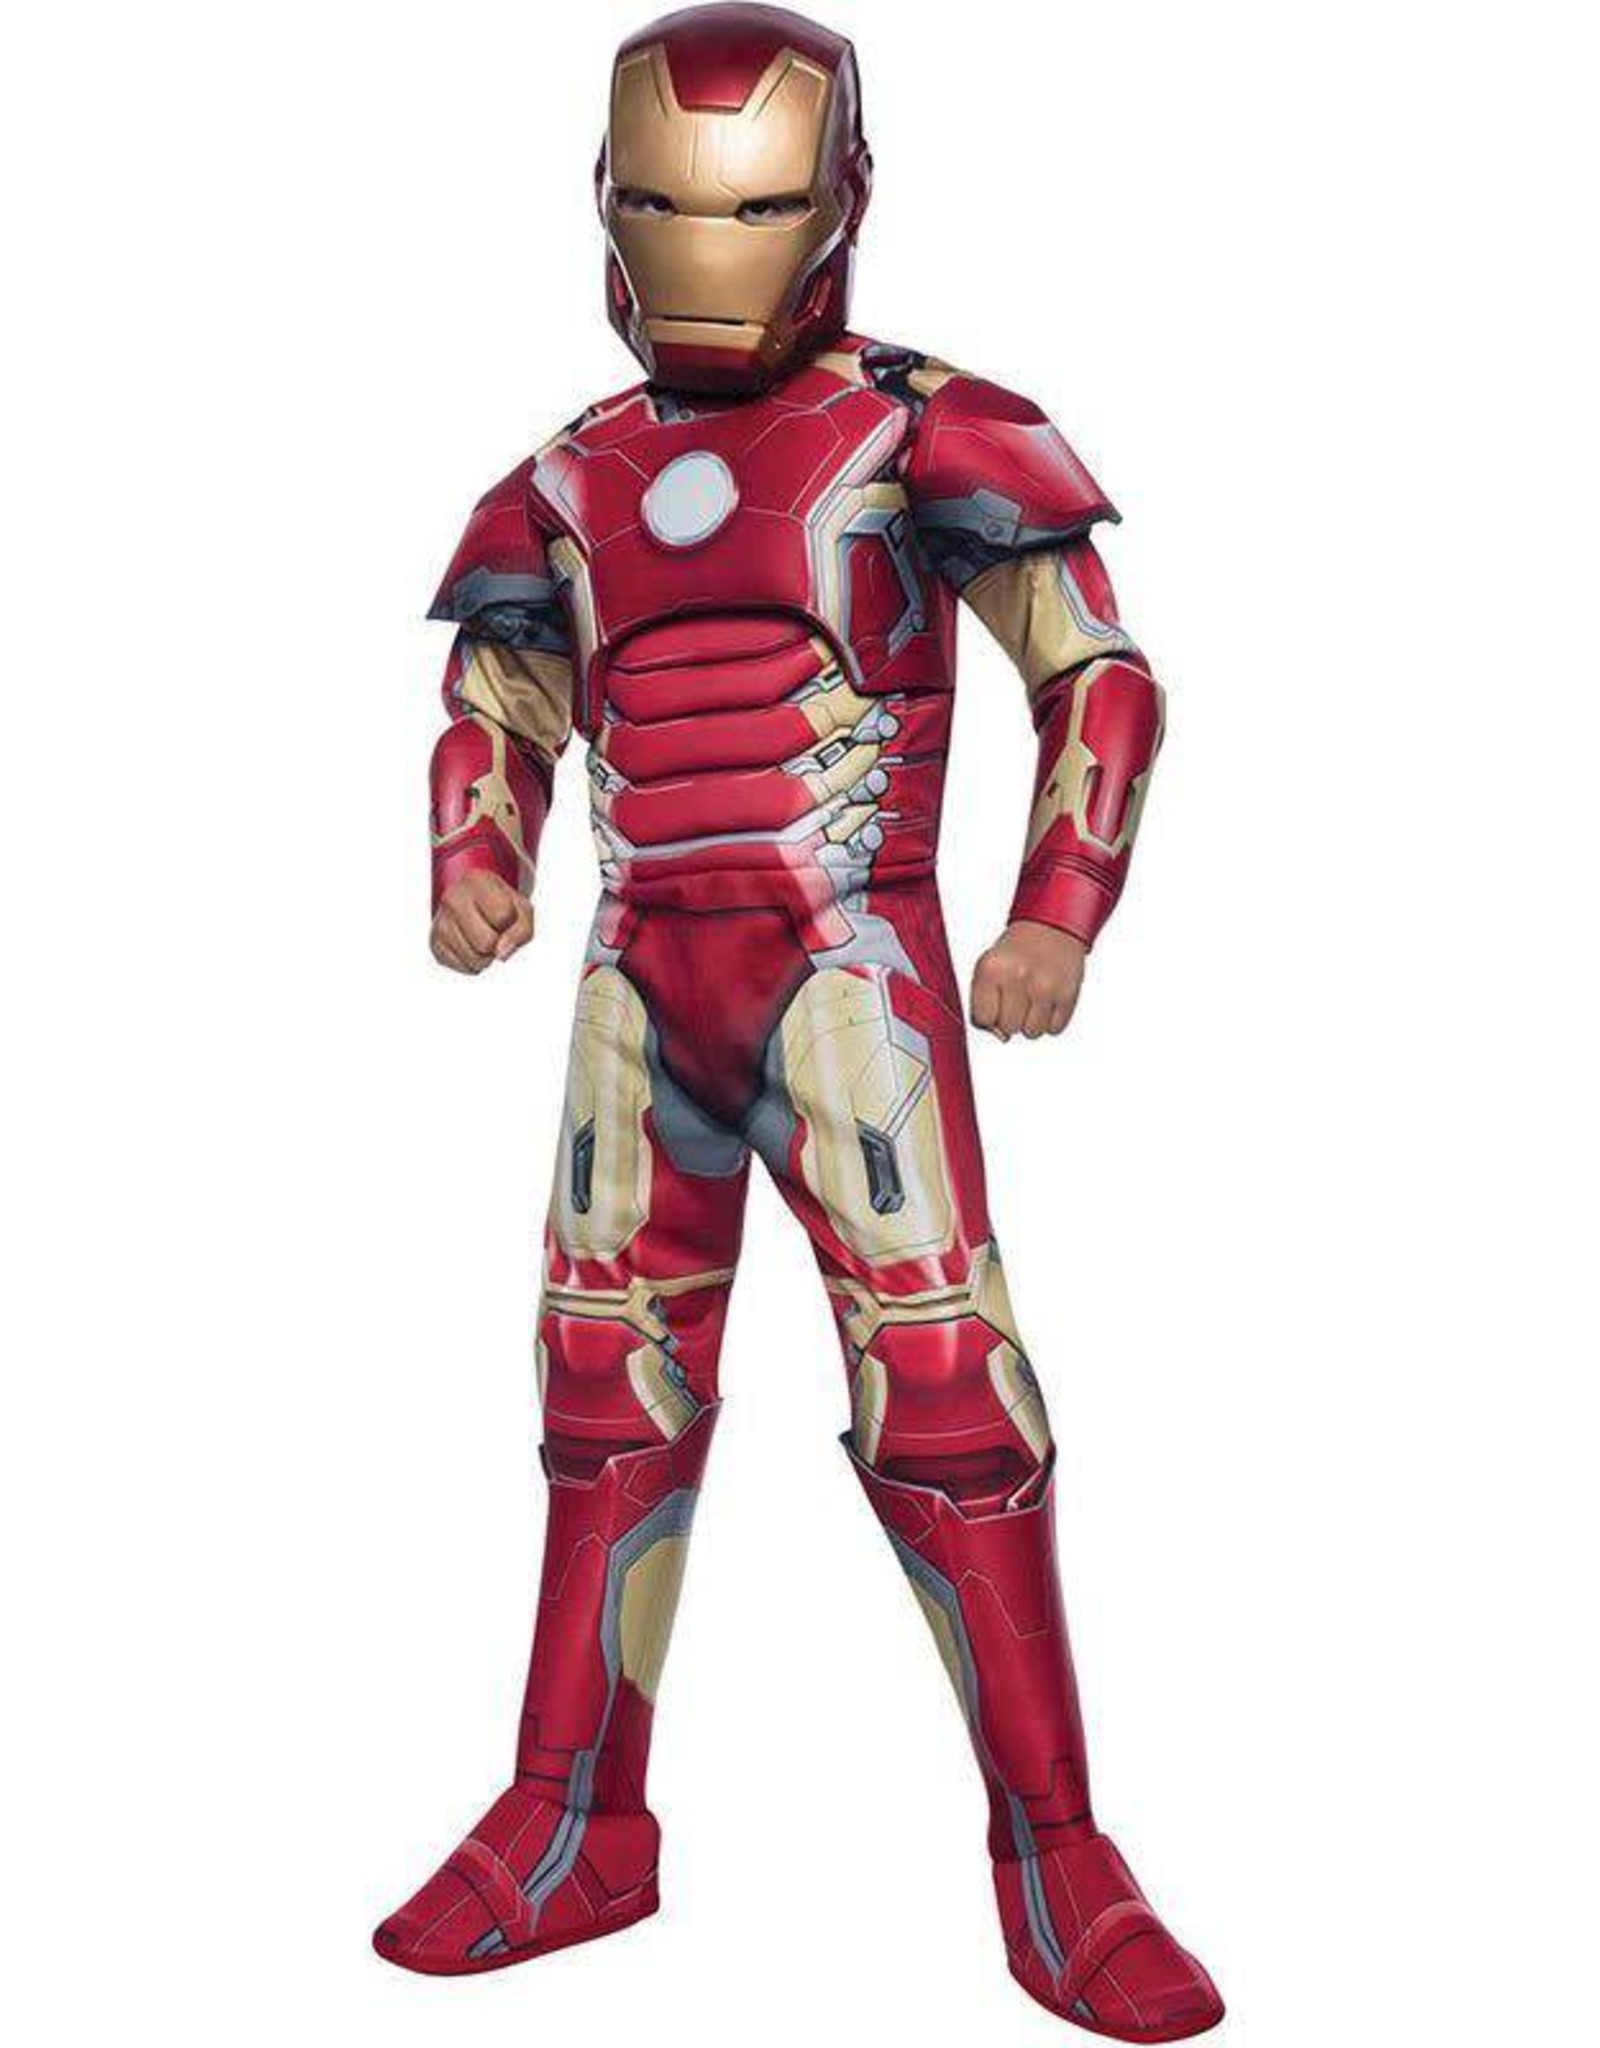 Rubies Iron man Mark 43 DLX